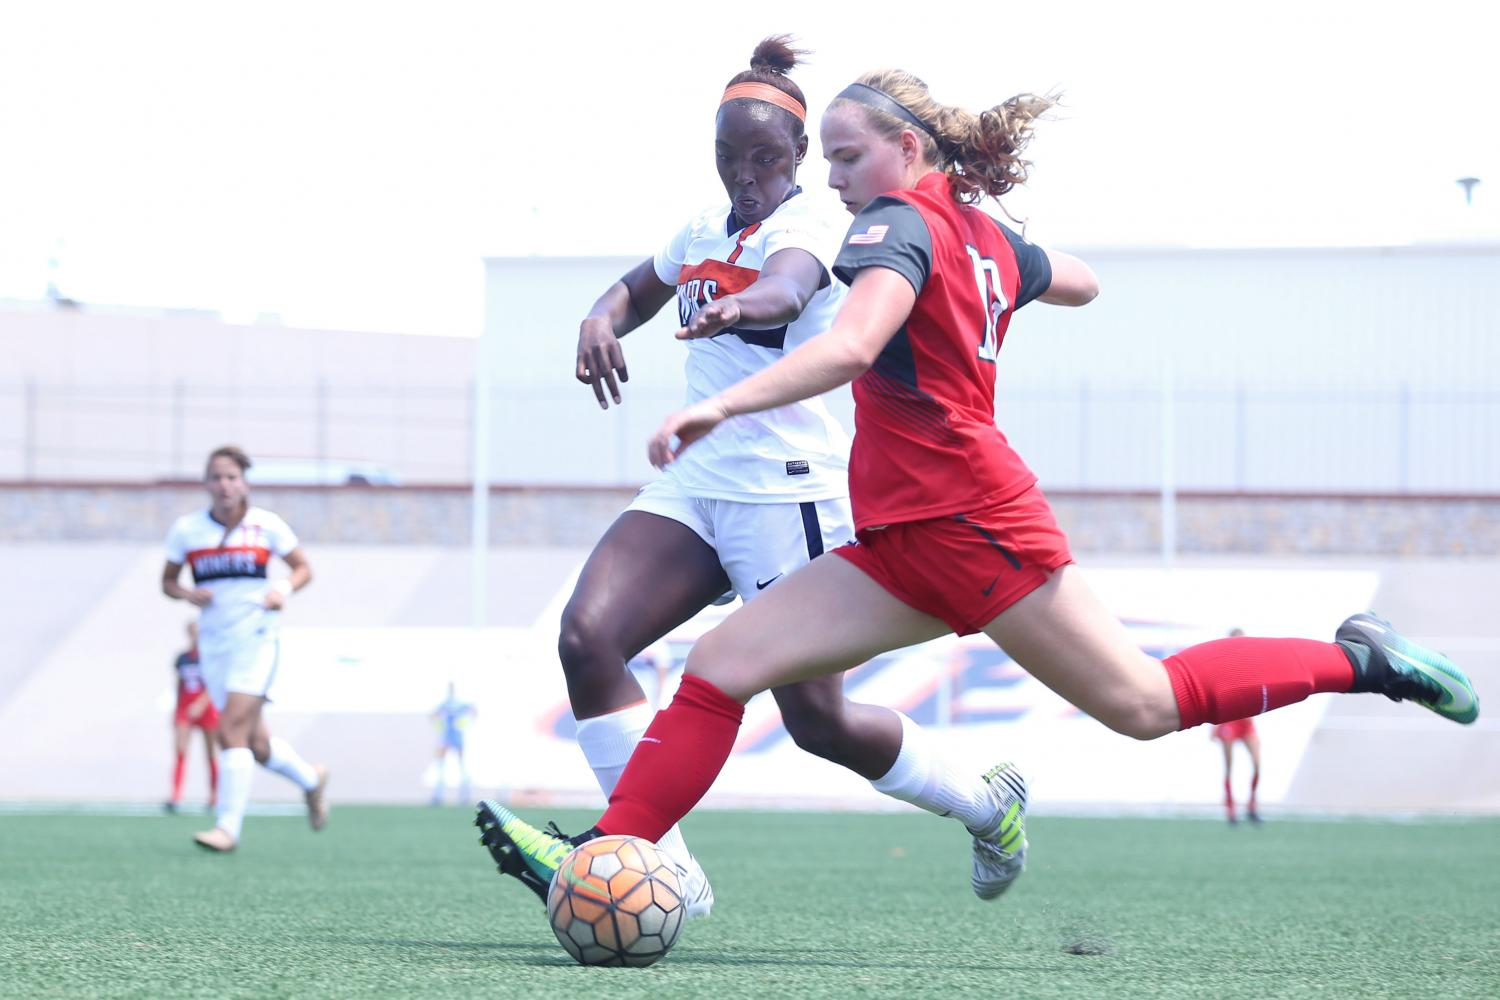 UTEP womens soccer falls to Arizona in exhibition game